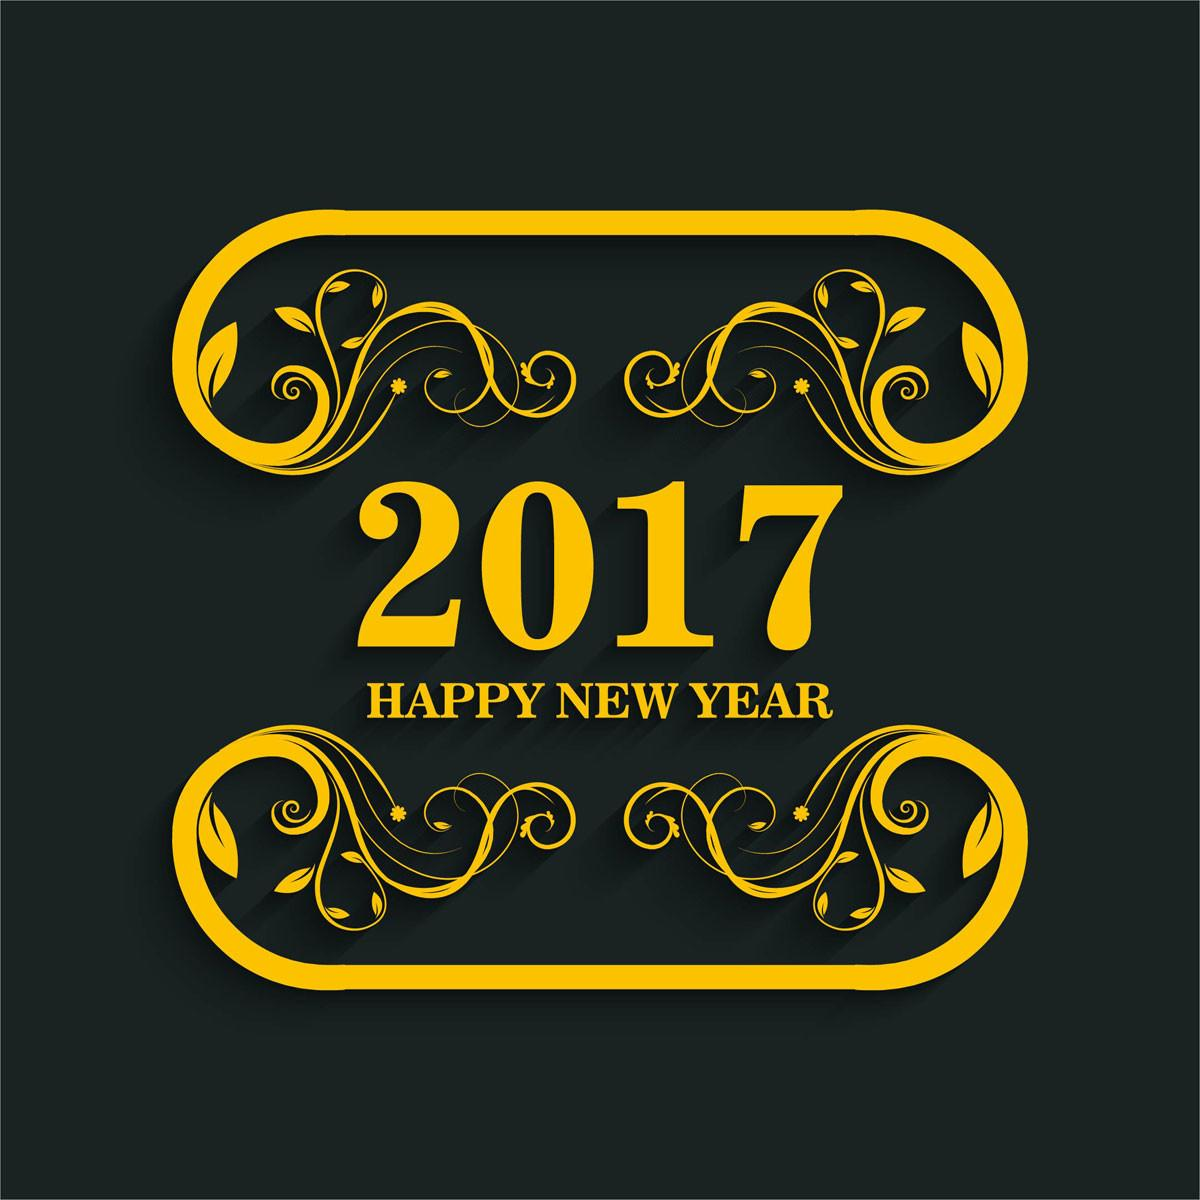 Happy New Year 2017 Quotes Motivate Your Friends